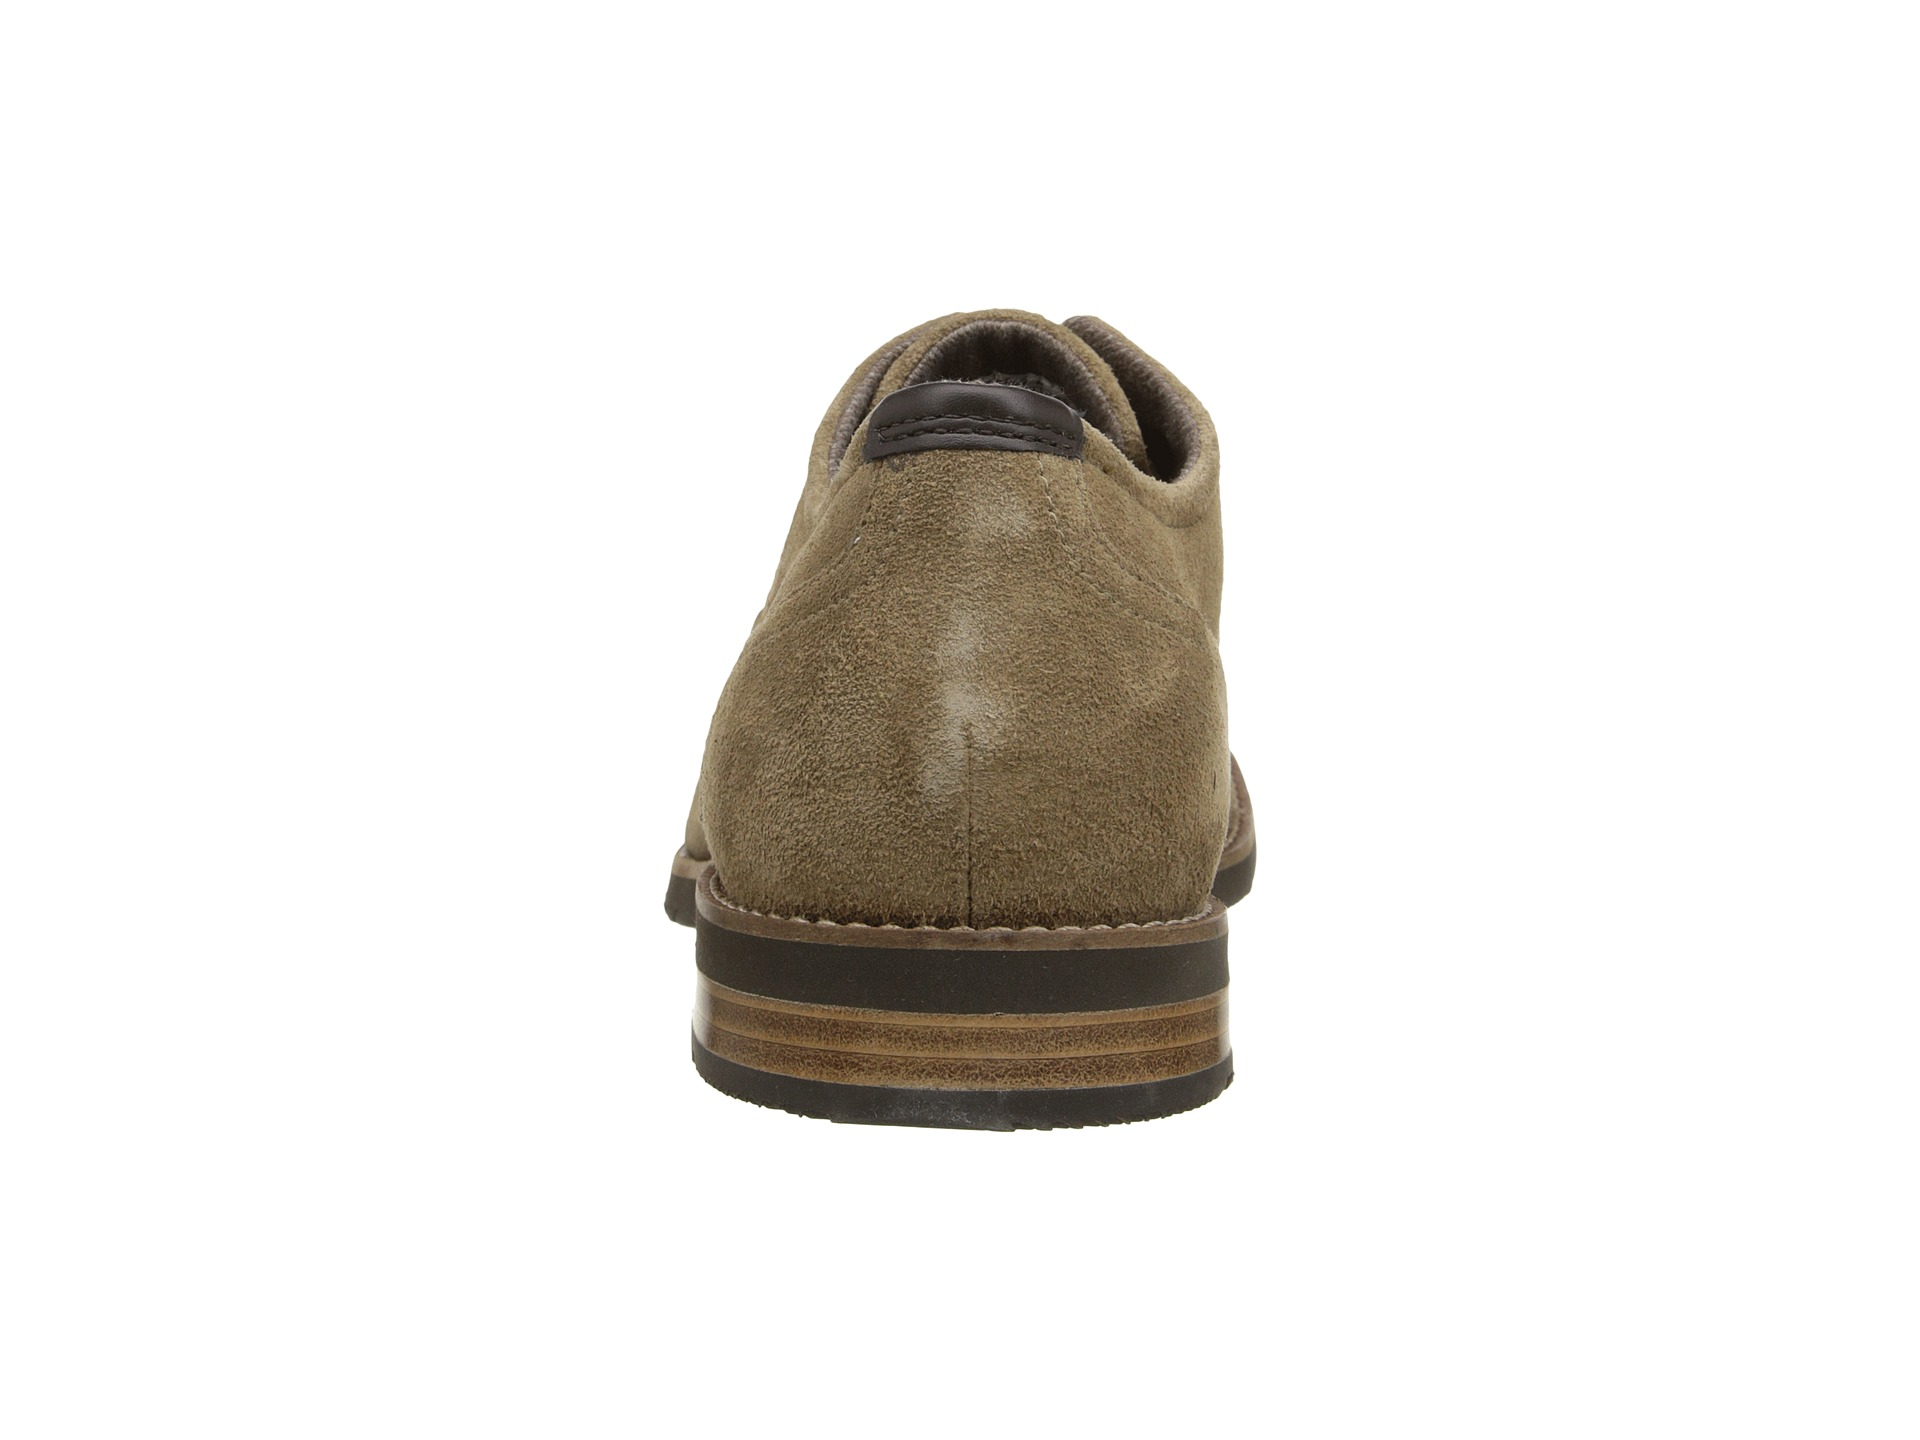 Suede Oxfords For Men Mens Clothing Ideas On